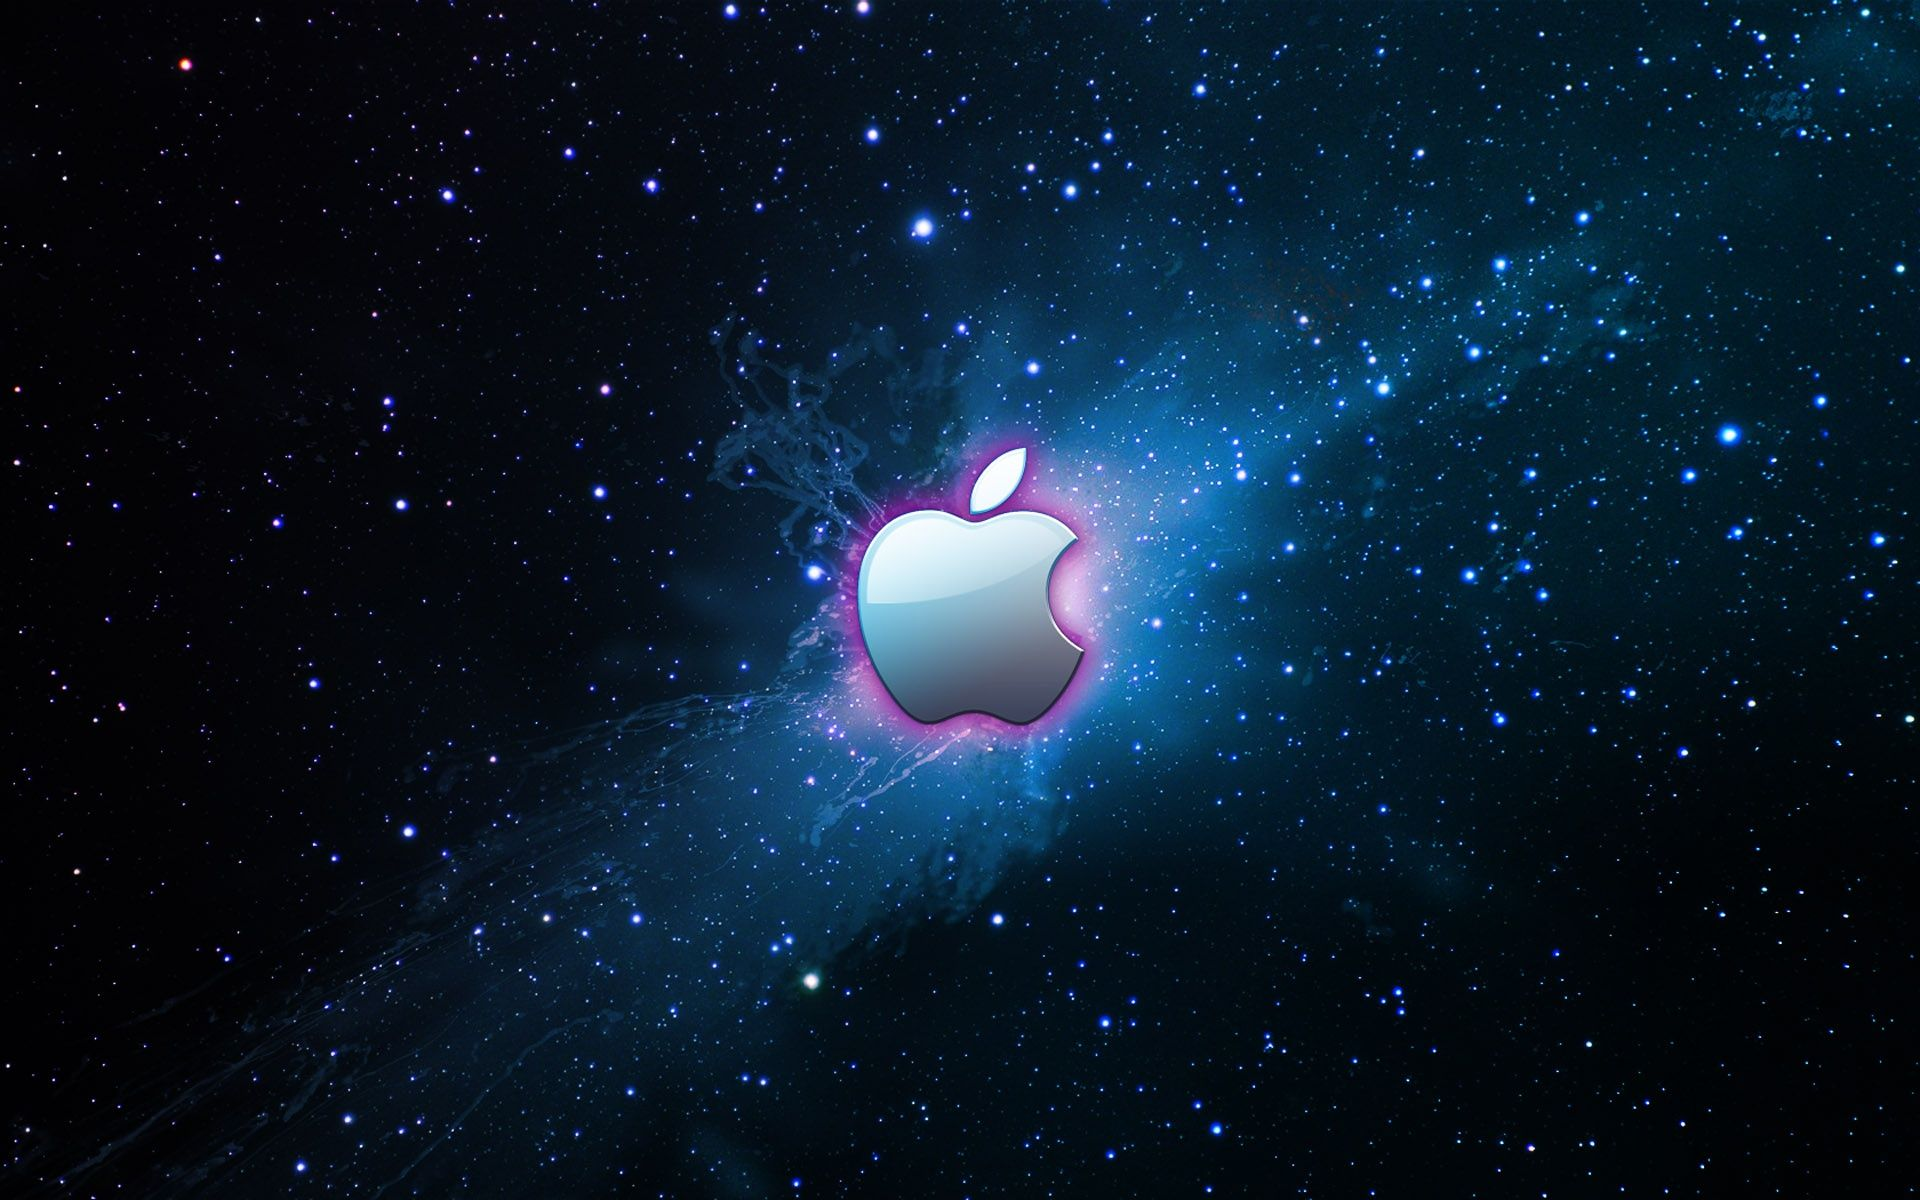 Apple Logo Wallpaper Hd Wallpaper Logos Pinterest